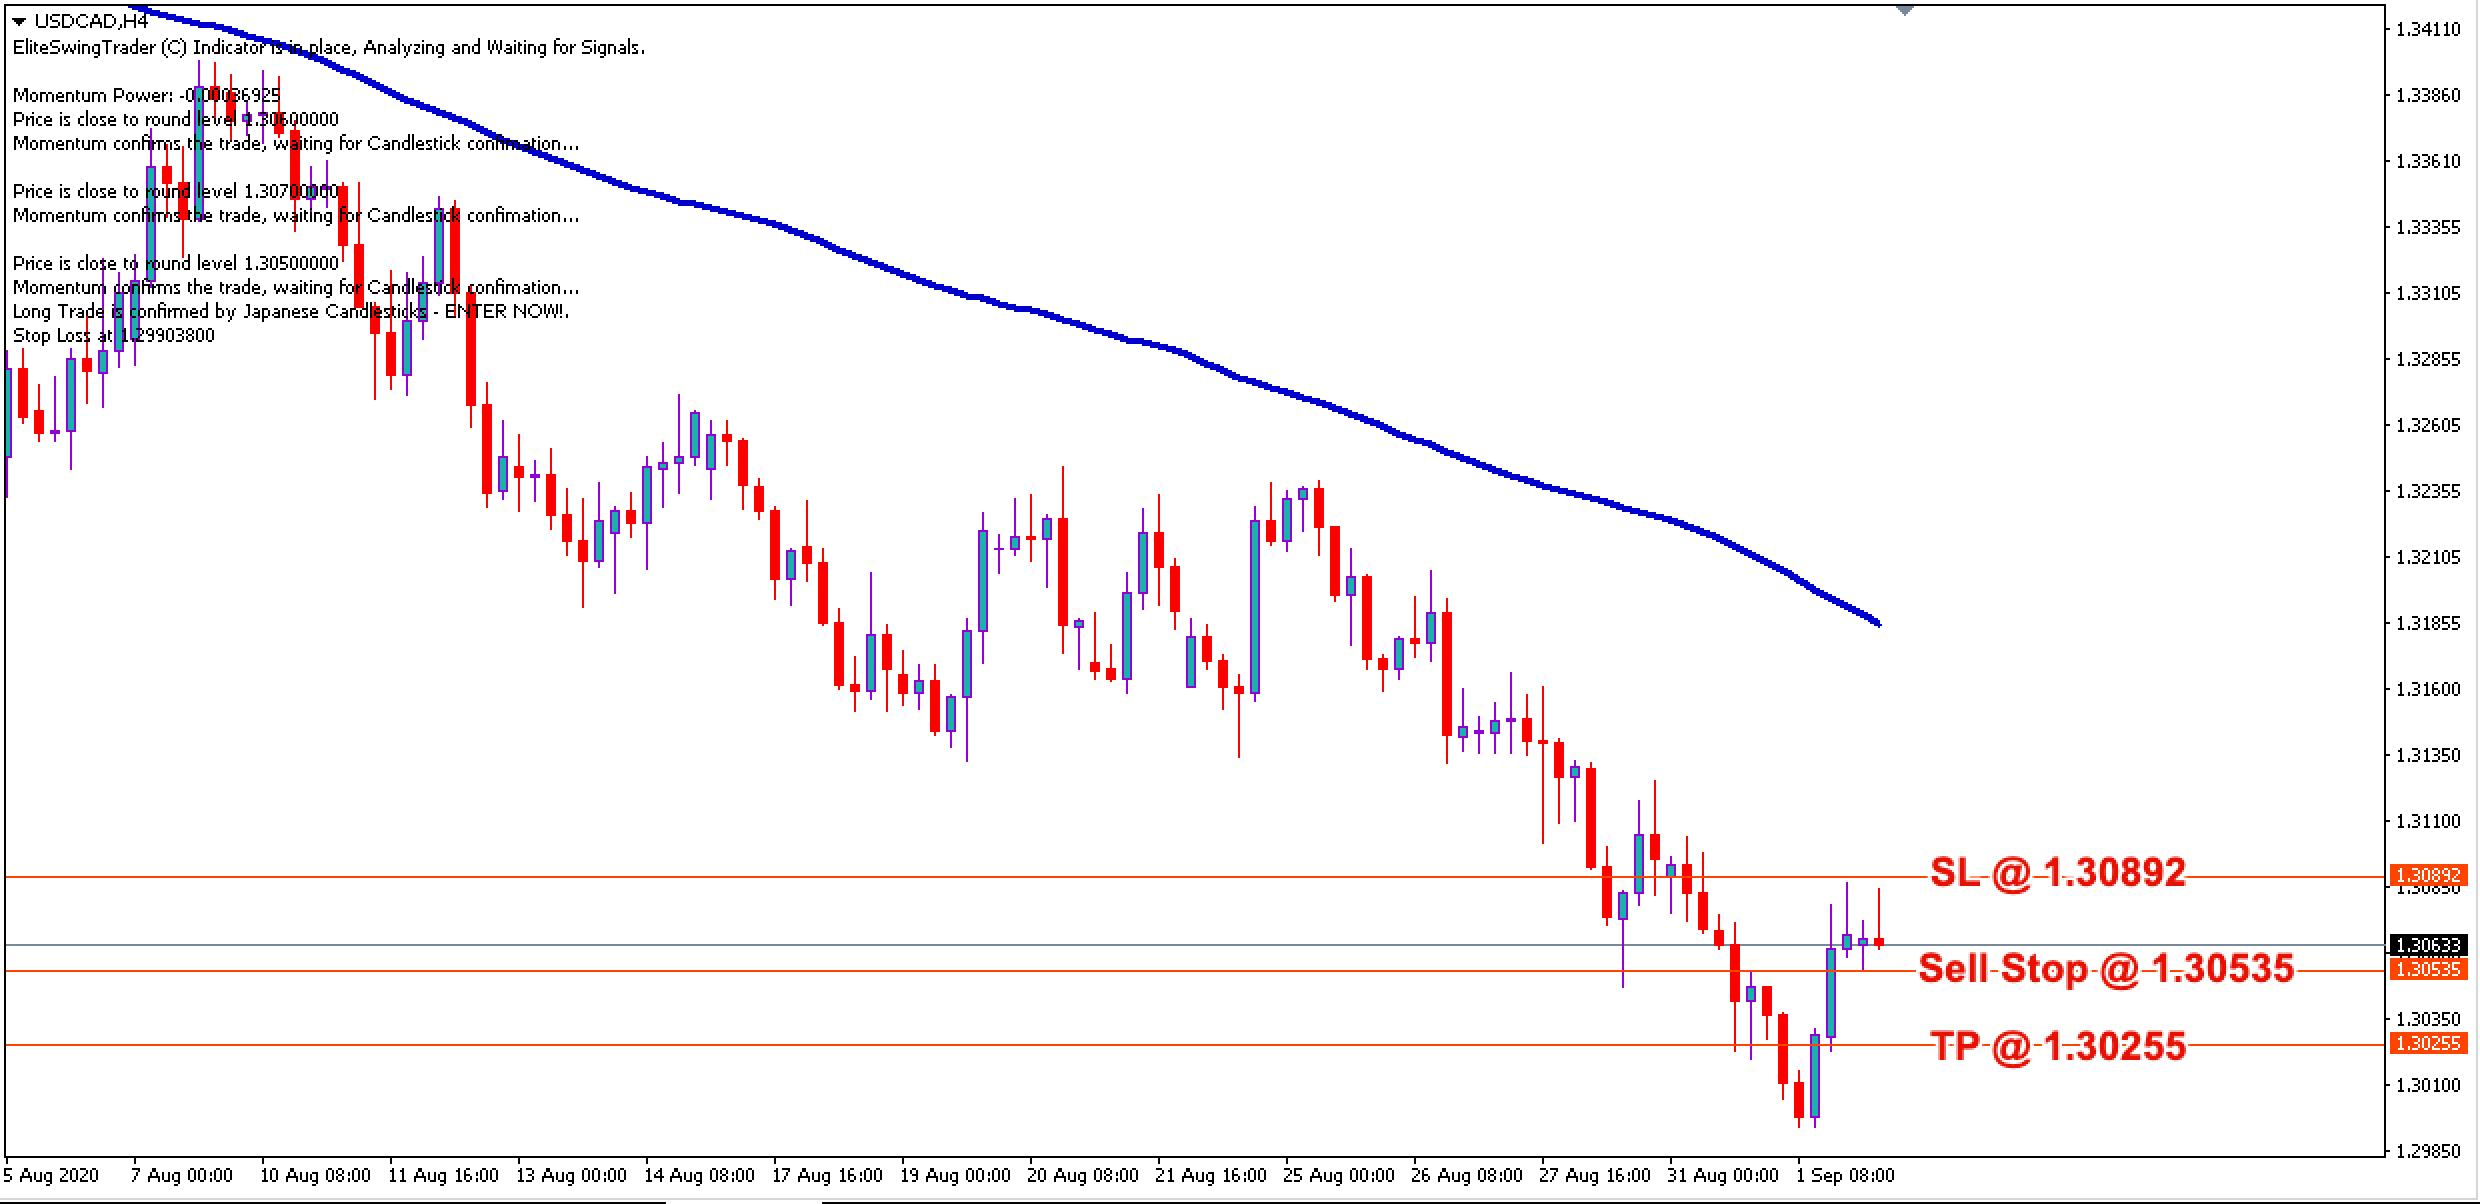 USD/CAD Daily Price Forecast - 2nd September 2020